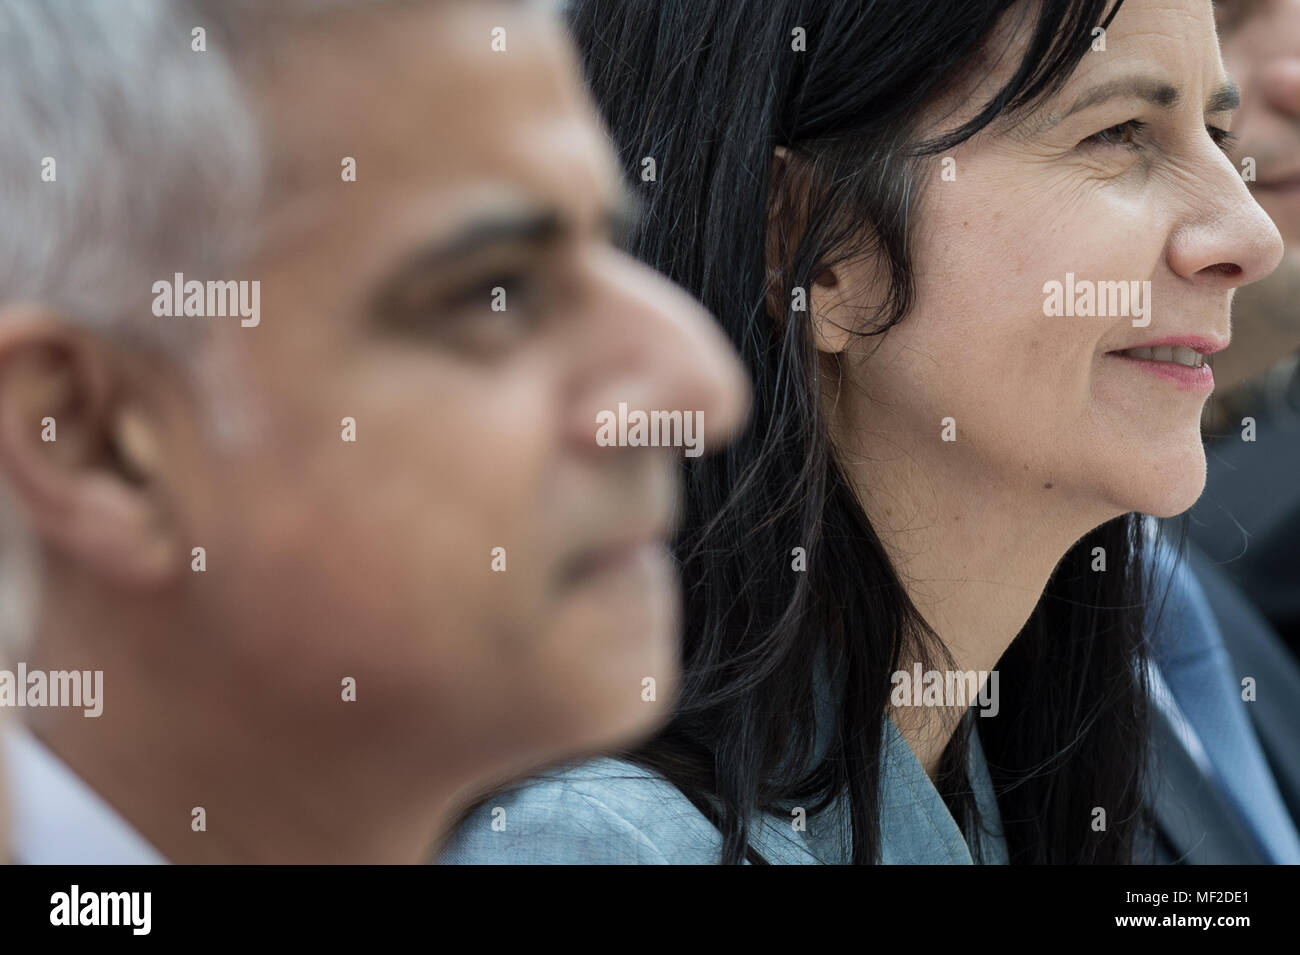 London, UK. 24th April, 2018. Statue creator, Gillian Wearing (right) sits with Mayor of London, Saduq Khan(left), during the unveiling ceremony of Millicent Fawcett in Parliament Square. The first statue of a woman in Parliament Square joins the line-up of male figures to mark the centenary of women's suffrage in Britain - two years after the campaign to get female representation outside the Palace of Westminster began. Credit: Guy Corbishley/Alamy Live News - Stock Image